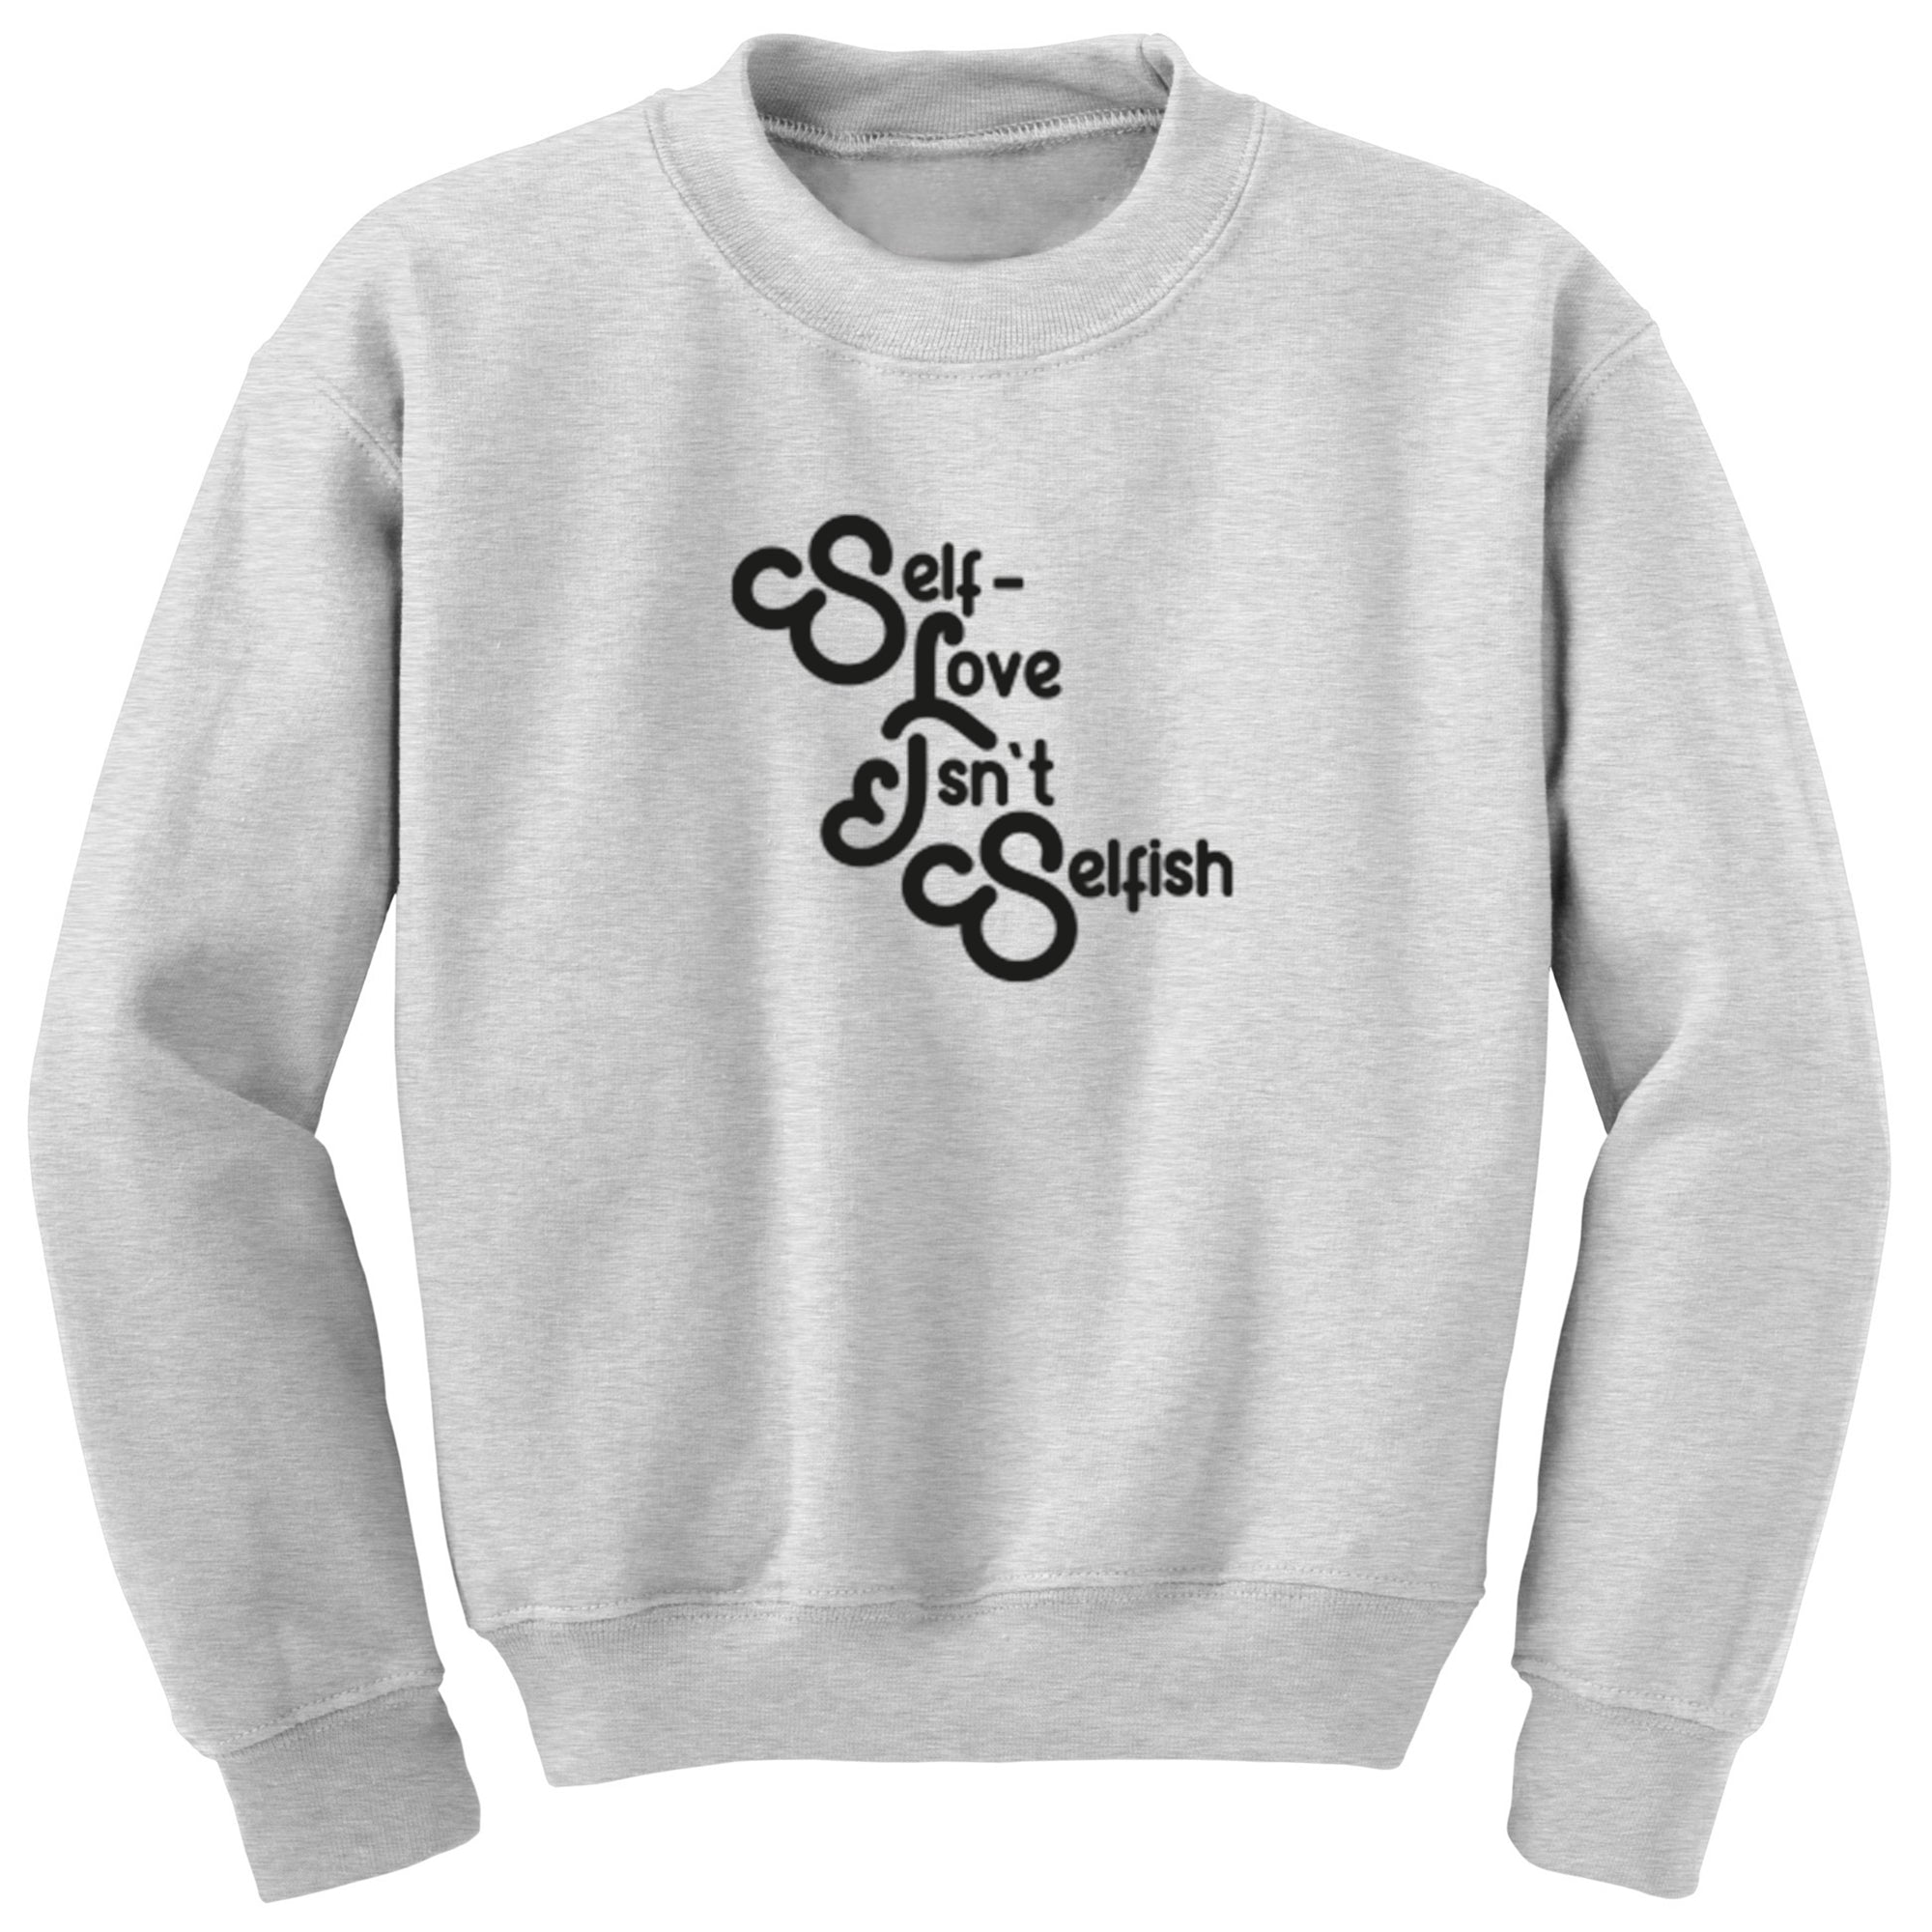 Self Love Isn't Selfish Unisex Jumper S0912 - Illustrated Identity Ltd.